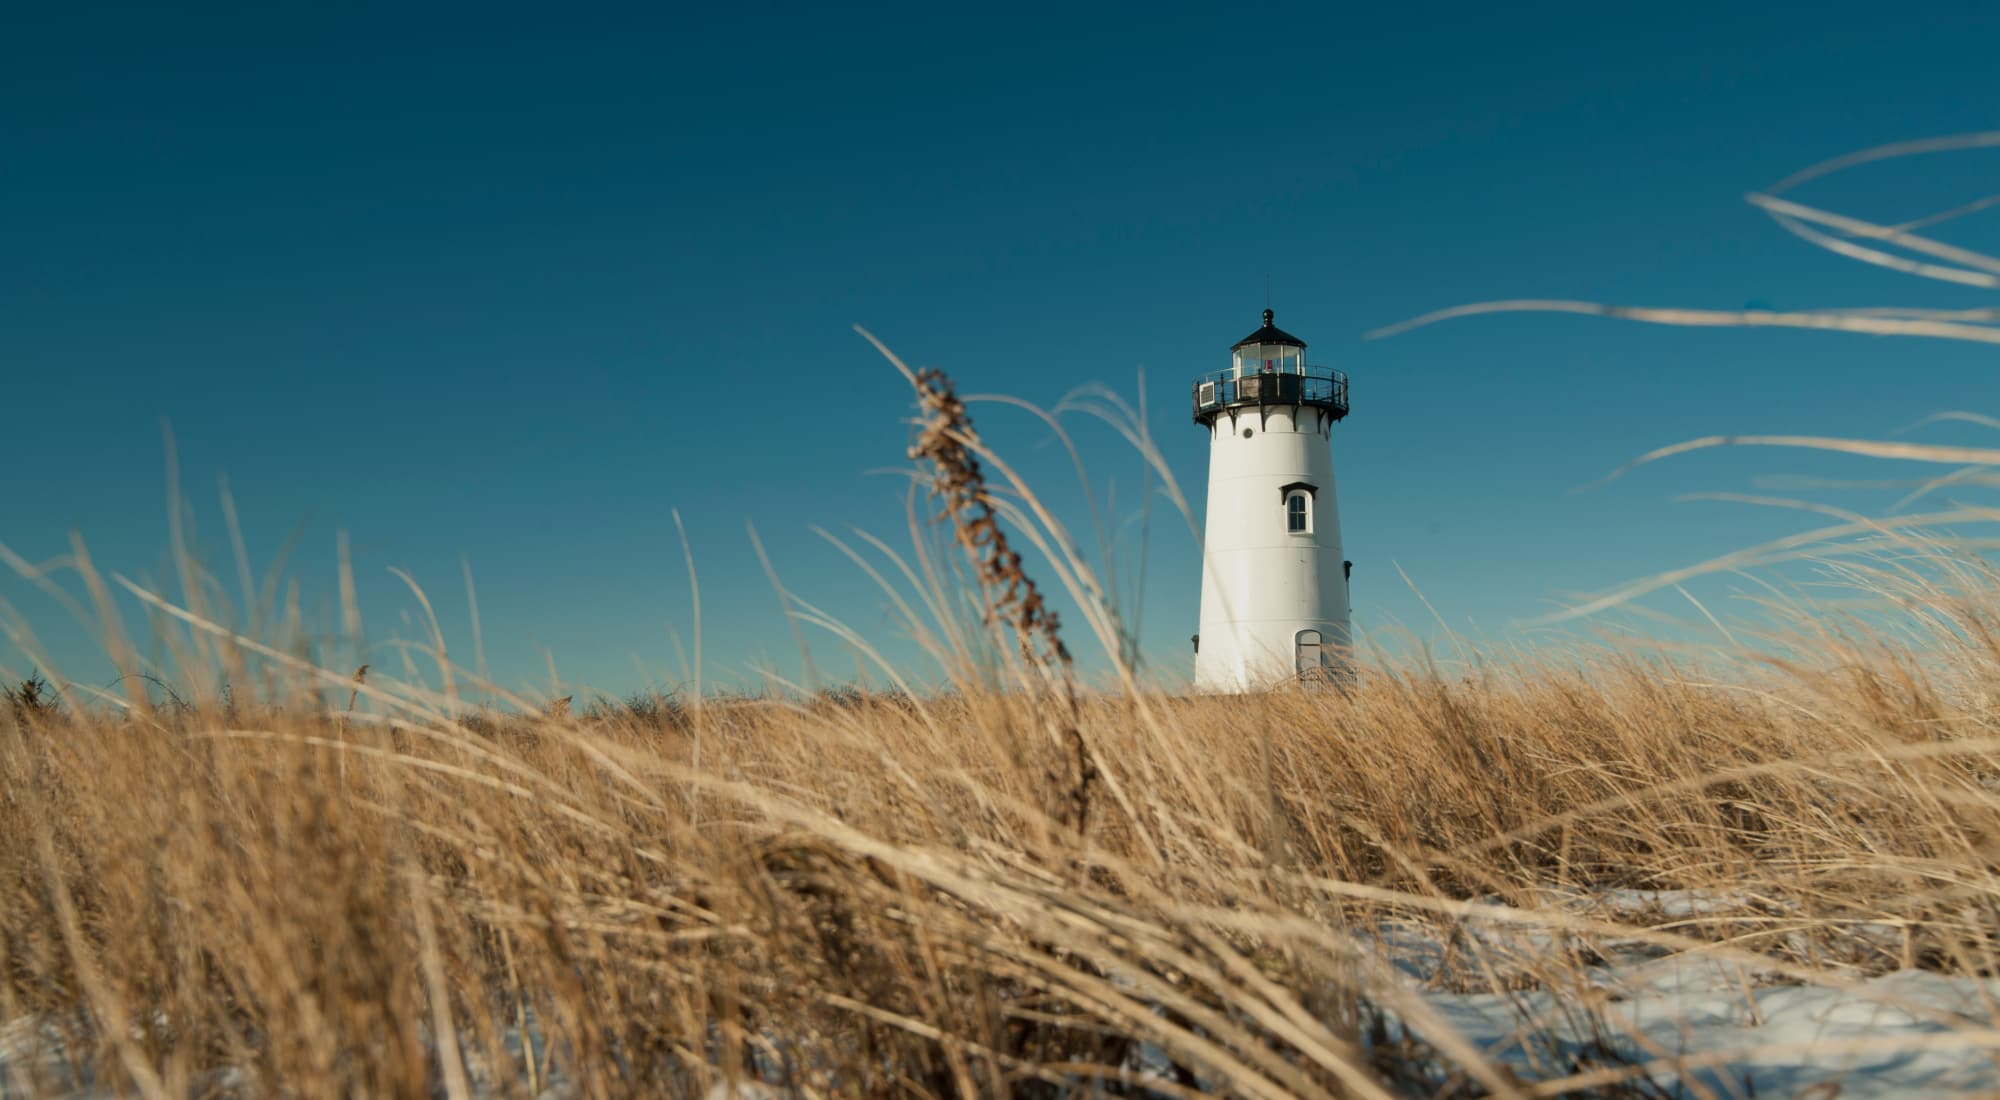 Lighthouse near Maplewood at Brewster in Brewster, Massachusetts